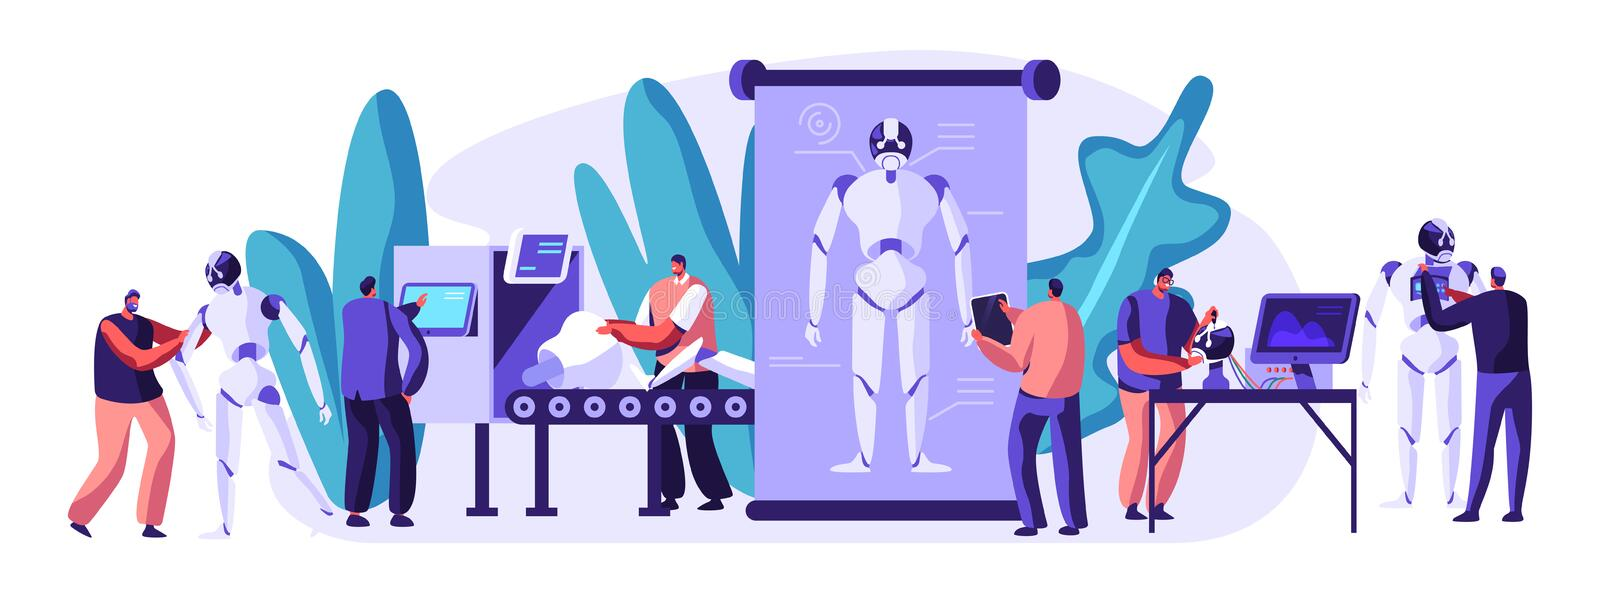 Engineers Characters Making and Programming Robots. Robotics Hardware and Software Engineering in Laboratory with Hi-Tech. Equipment. Artificial Intelligence vector illustration